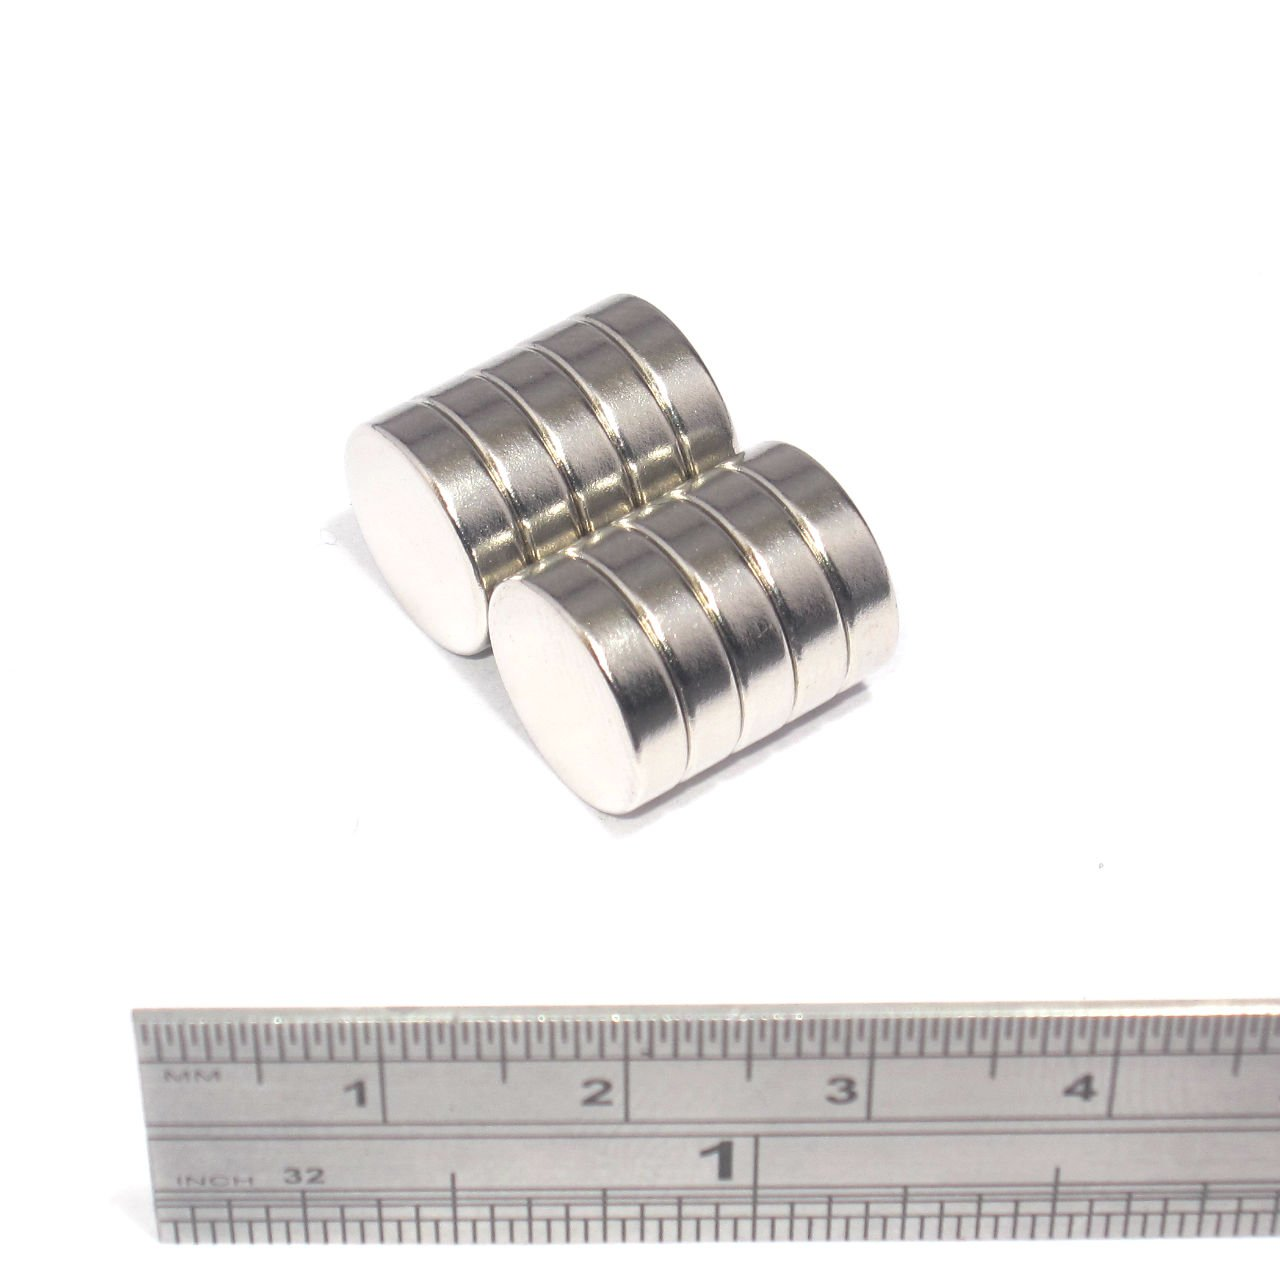 Super strong magnets for crafts - Big Bargain 10pcs 12mm X 3mm Disc Rare Earth Neodymium Super Strong Magnets N35 Craft Models